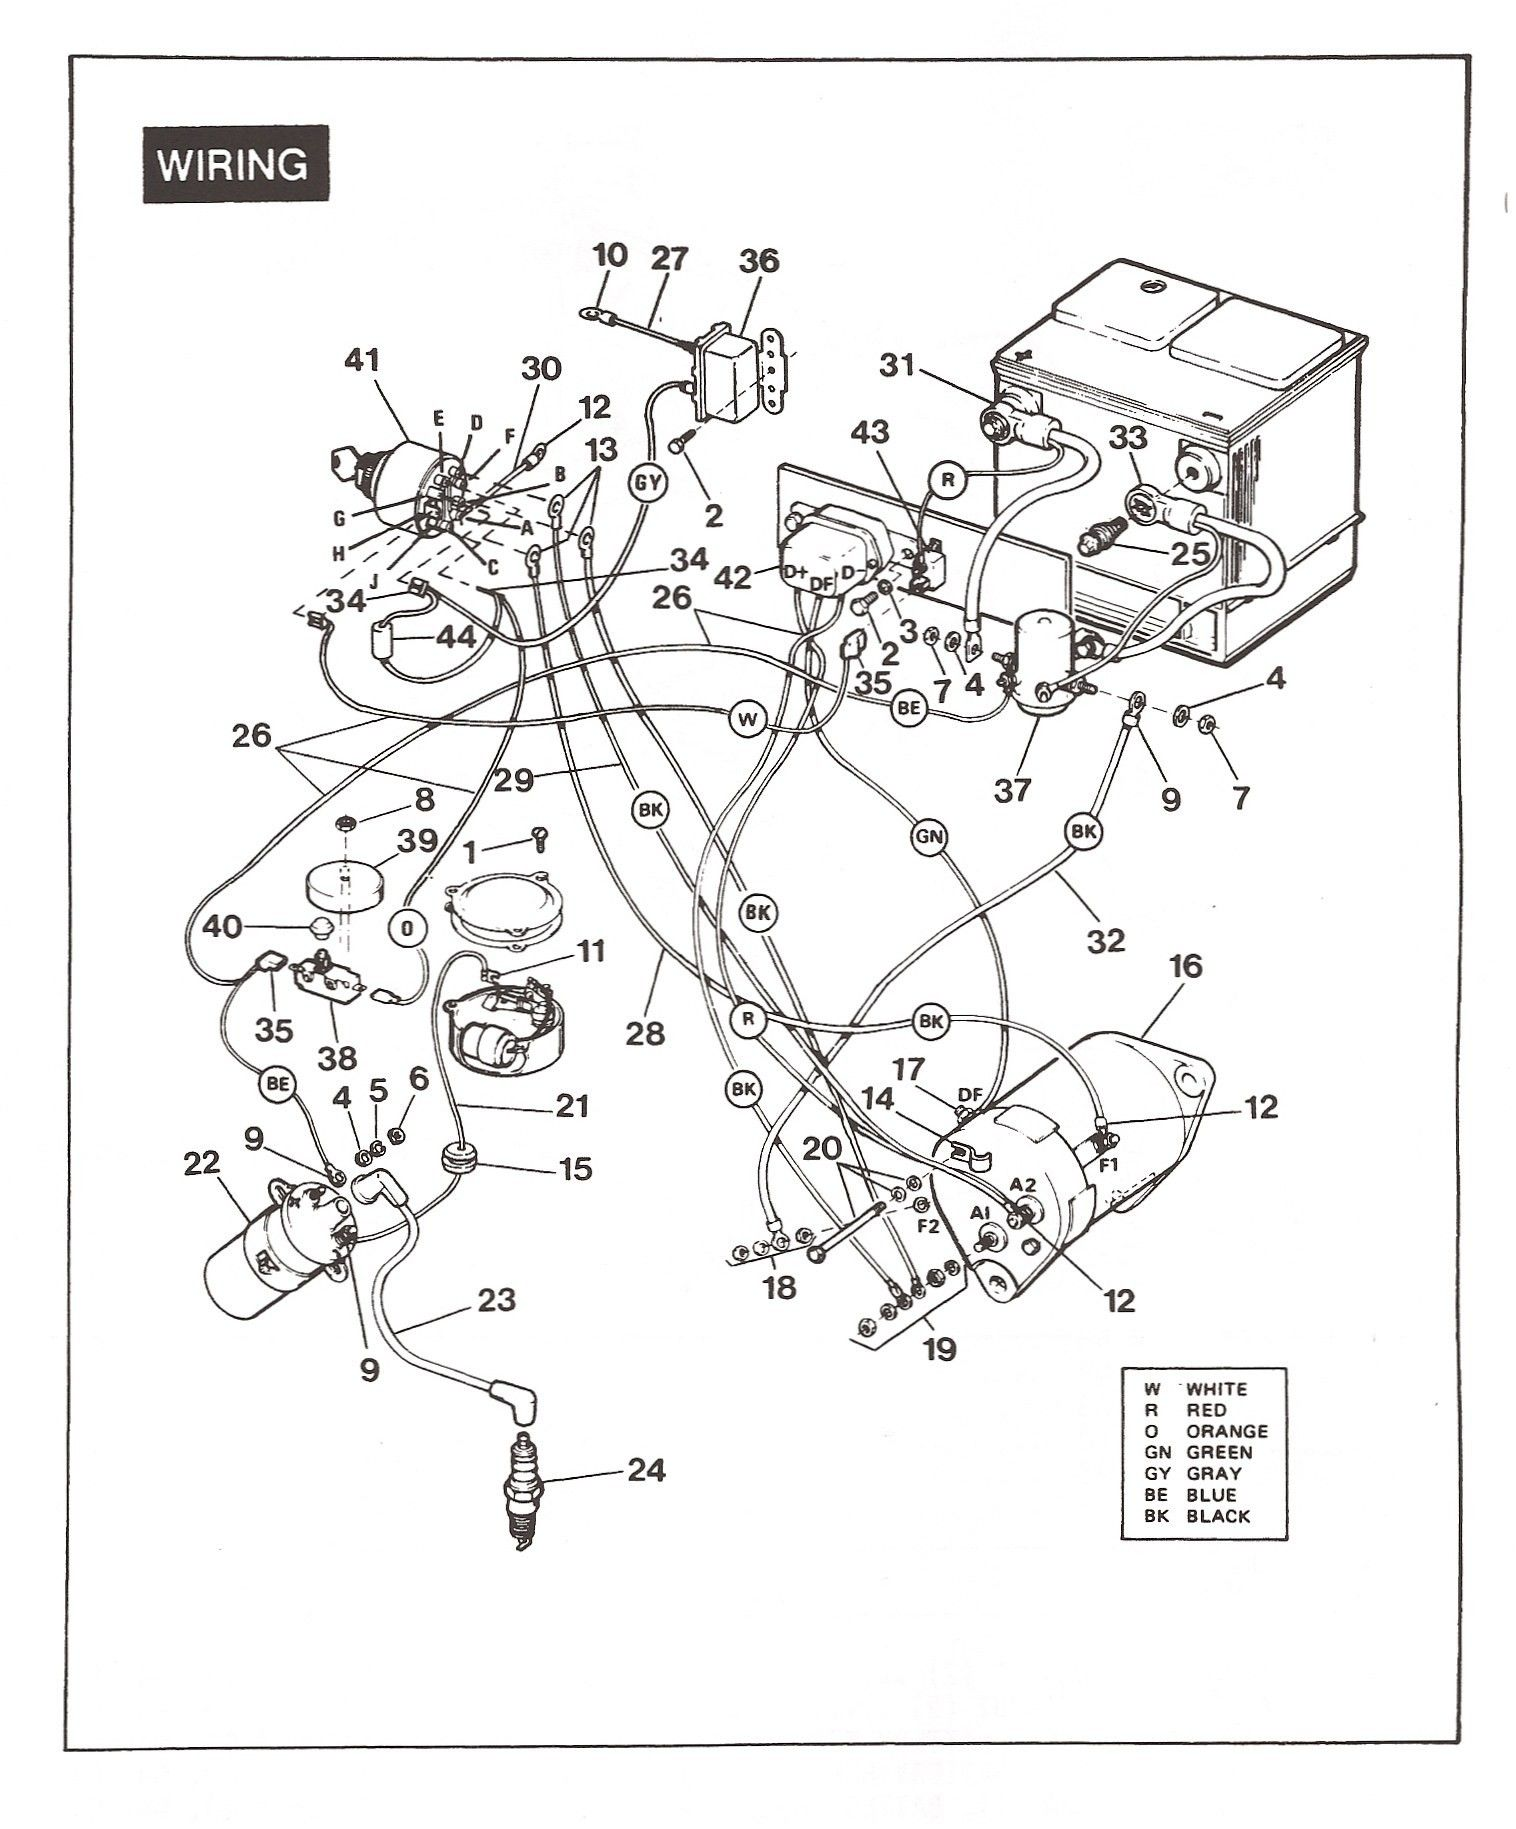 Unique Wiring Diagram For 1987 Club Car Golf Cart Diagram Diagramtemplate Diagramsample Golf Carts Ezgo Golf Cart Golf Cart Parts